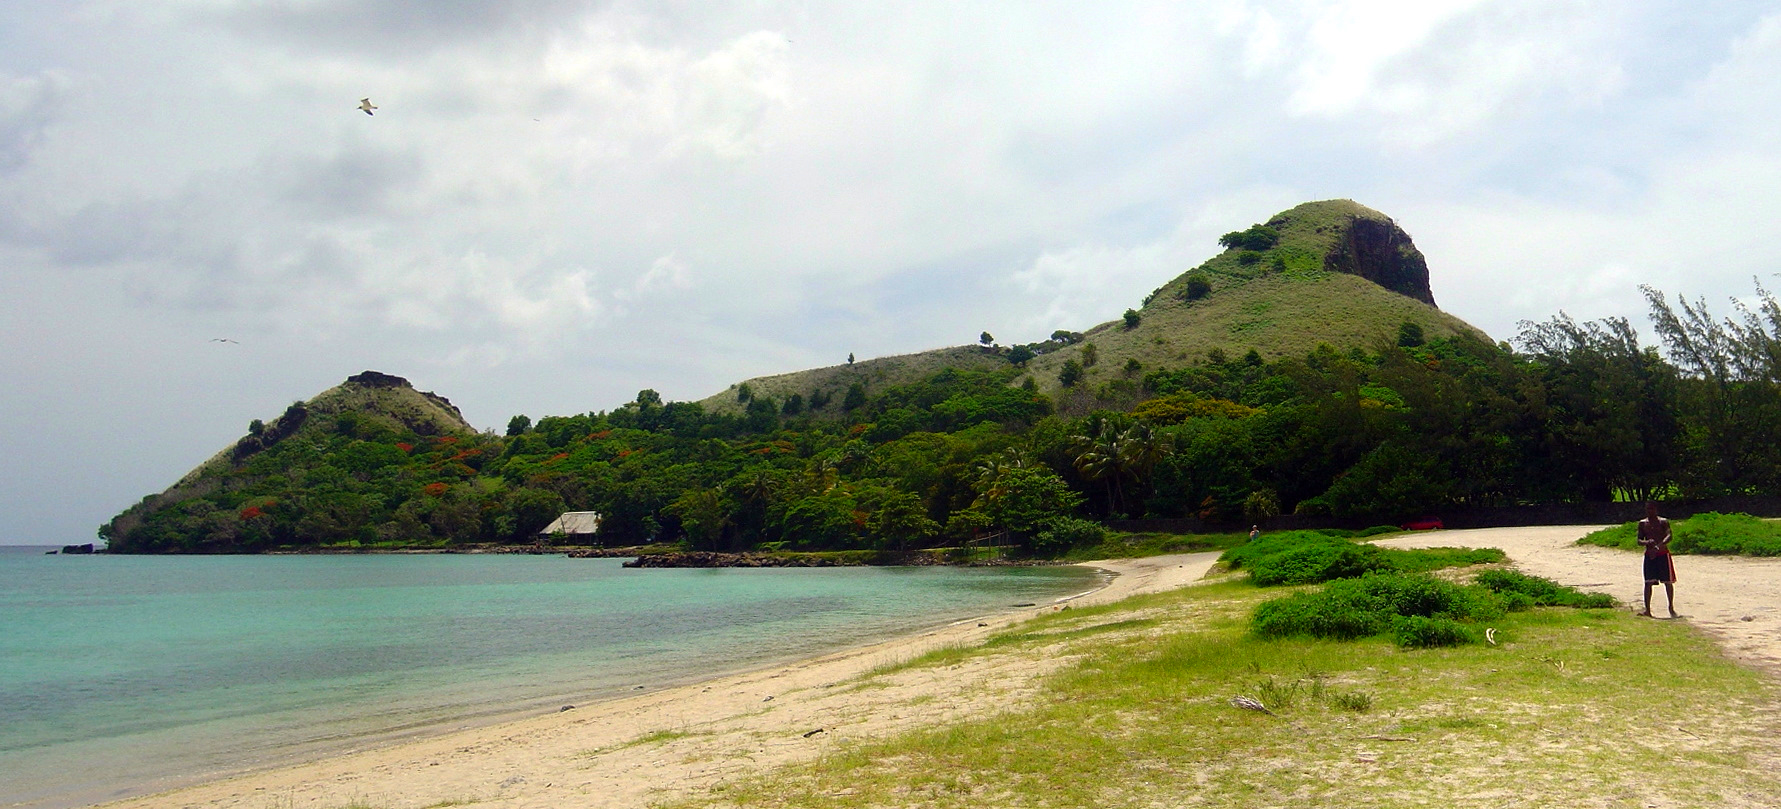 Pigeon Island as seen from the causeway